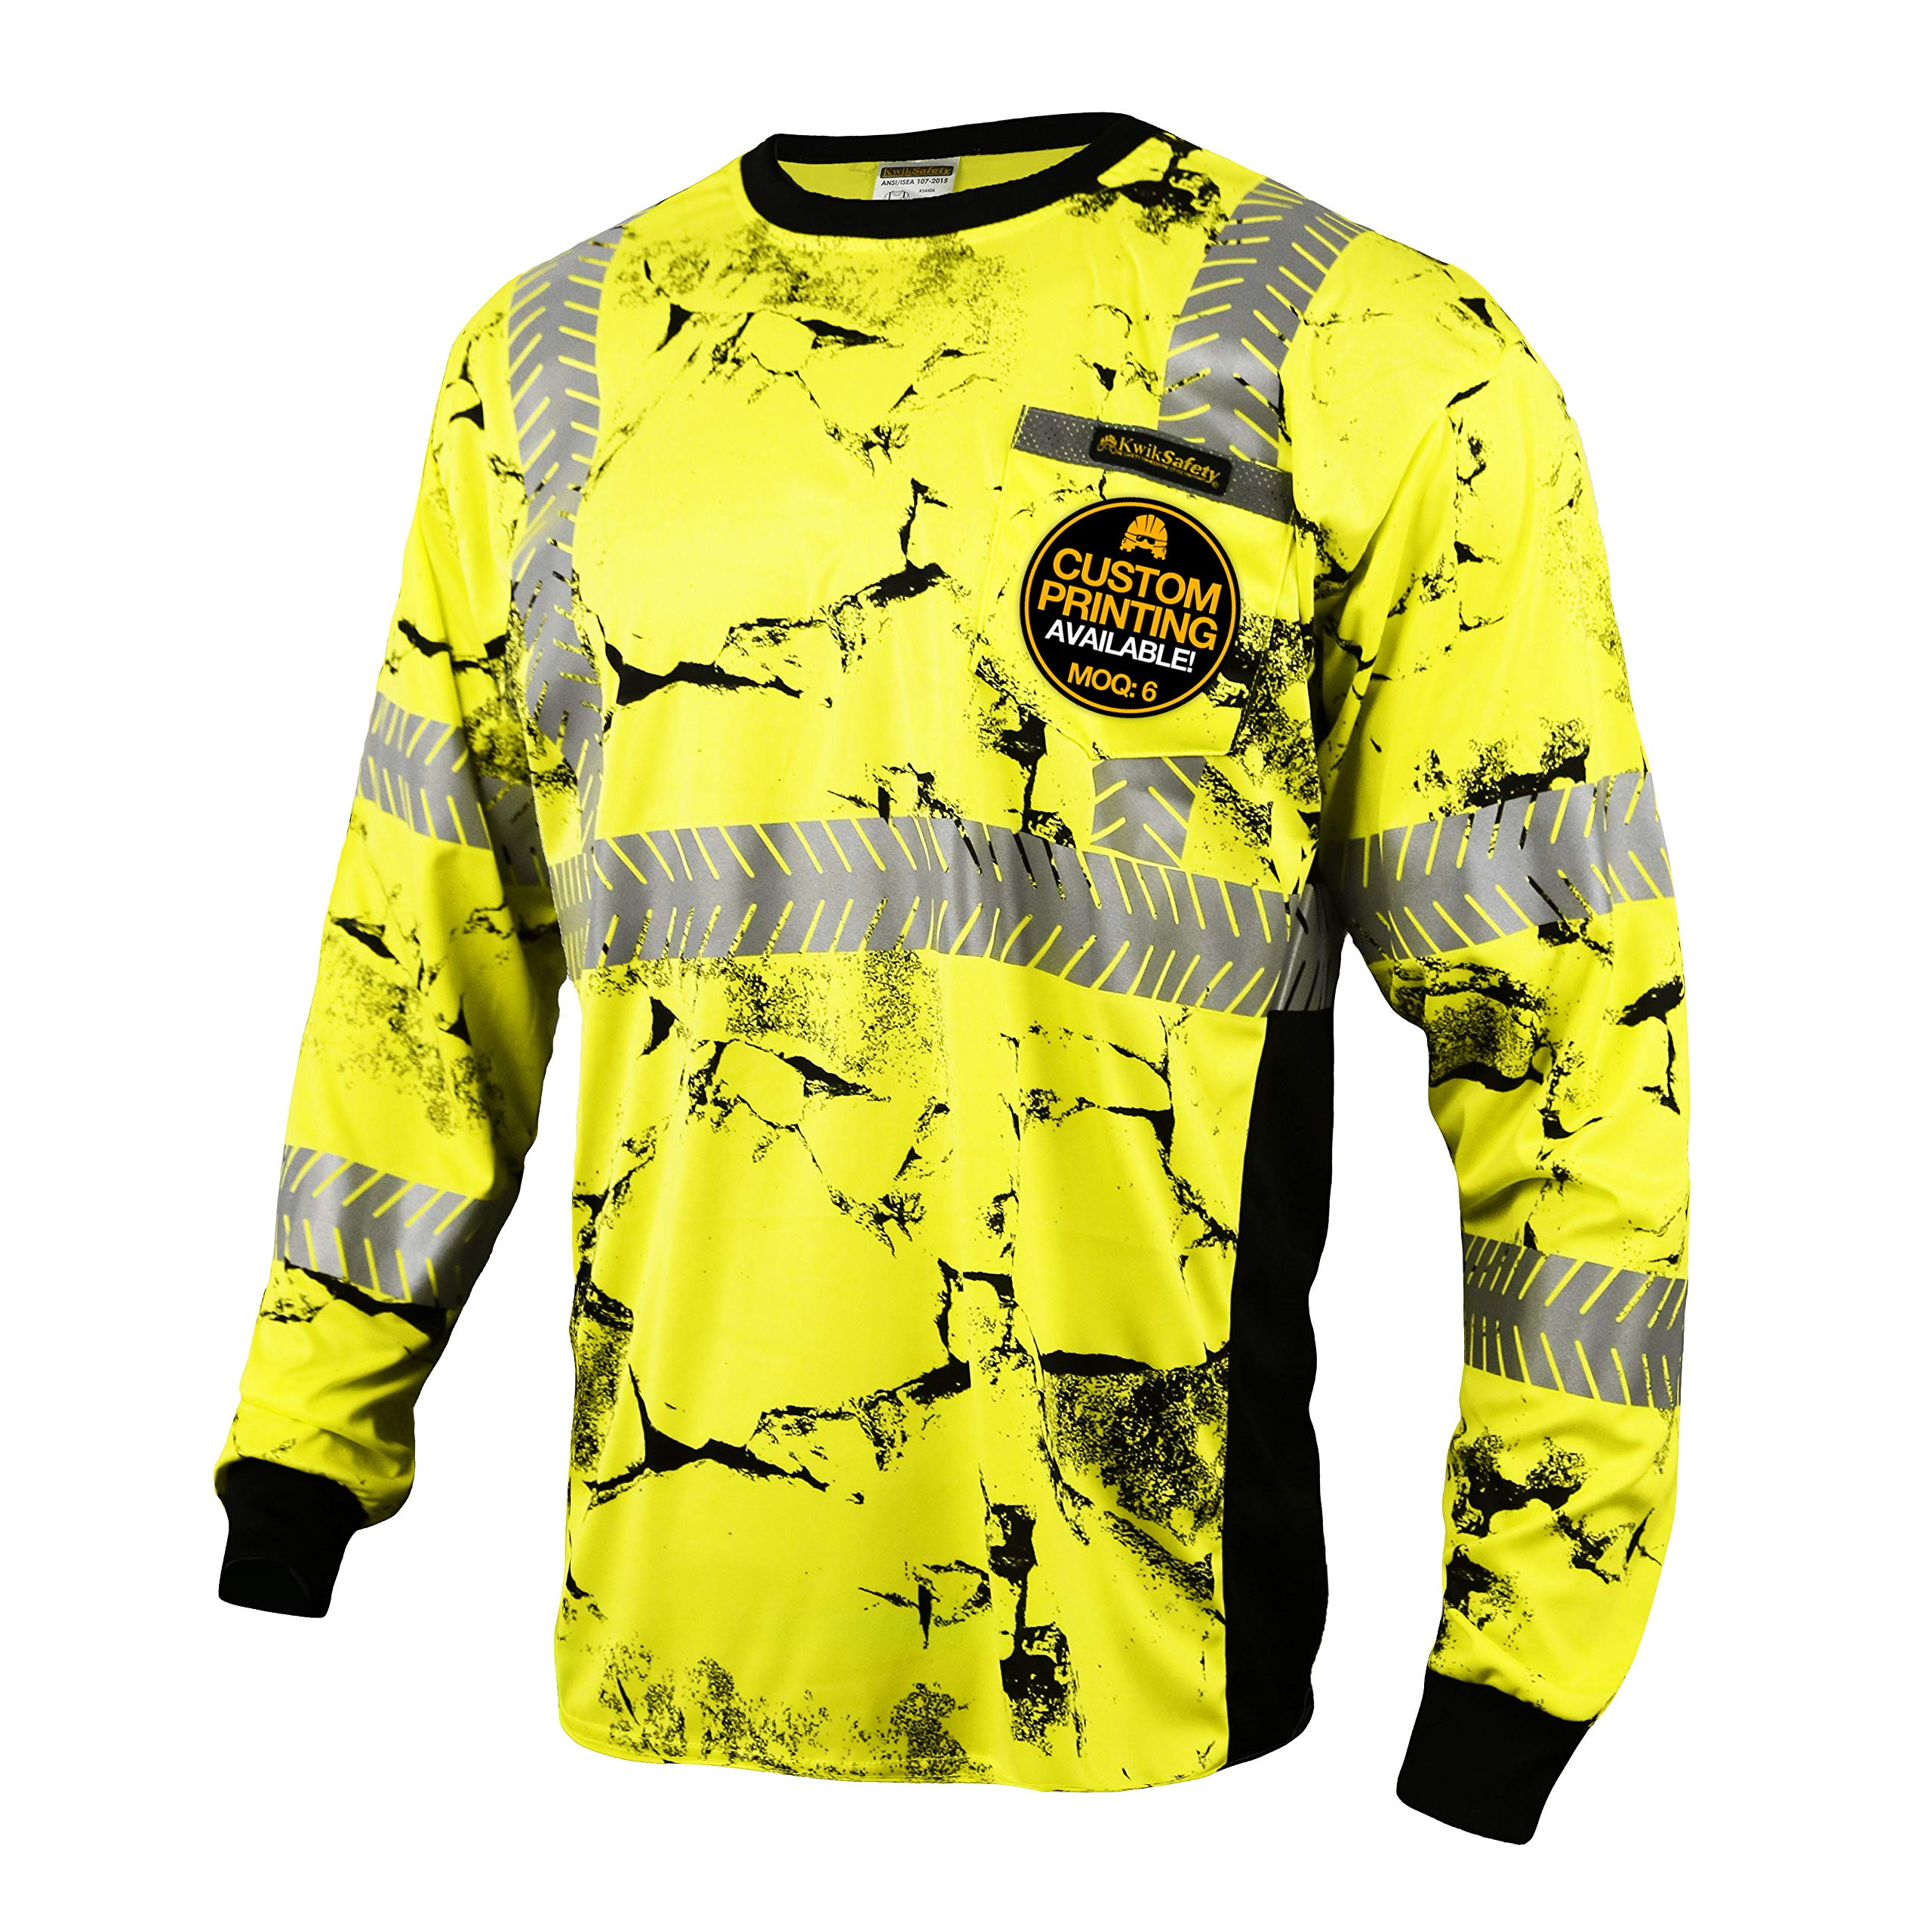 KwikSafety (Charlotte, NC) UNCLE WILLY'S WALL (Chest Pocket) Class 3 ANSI High Visibility Safety Shirt Fishbone Reflective Tape Construction Hi Vis Clothing Men Long Sleeve Camo Yellow Black 2XL